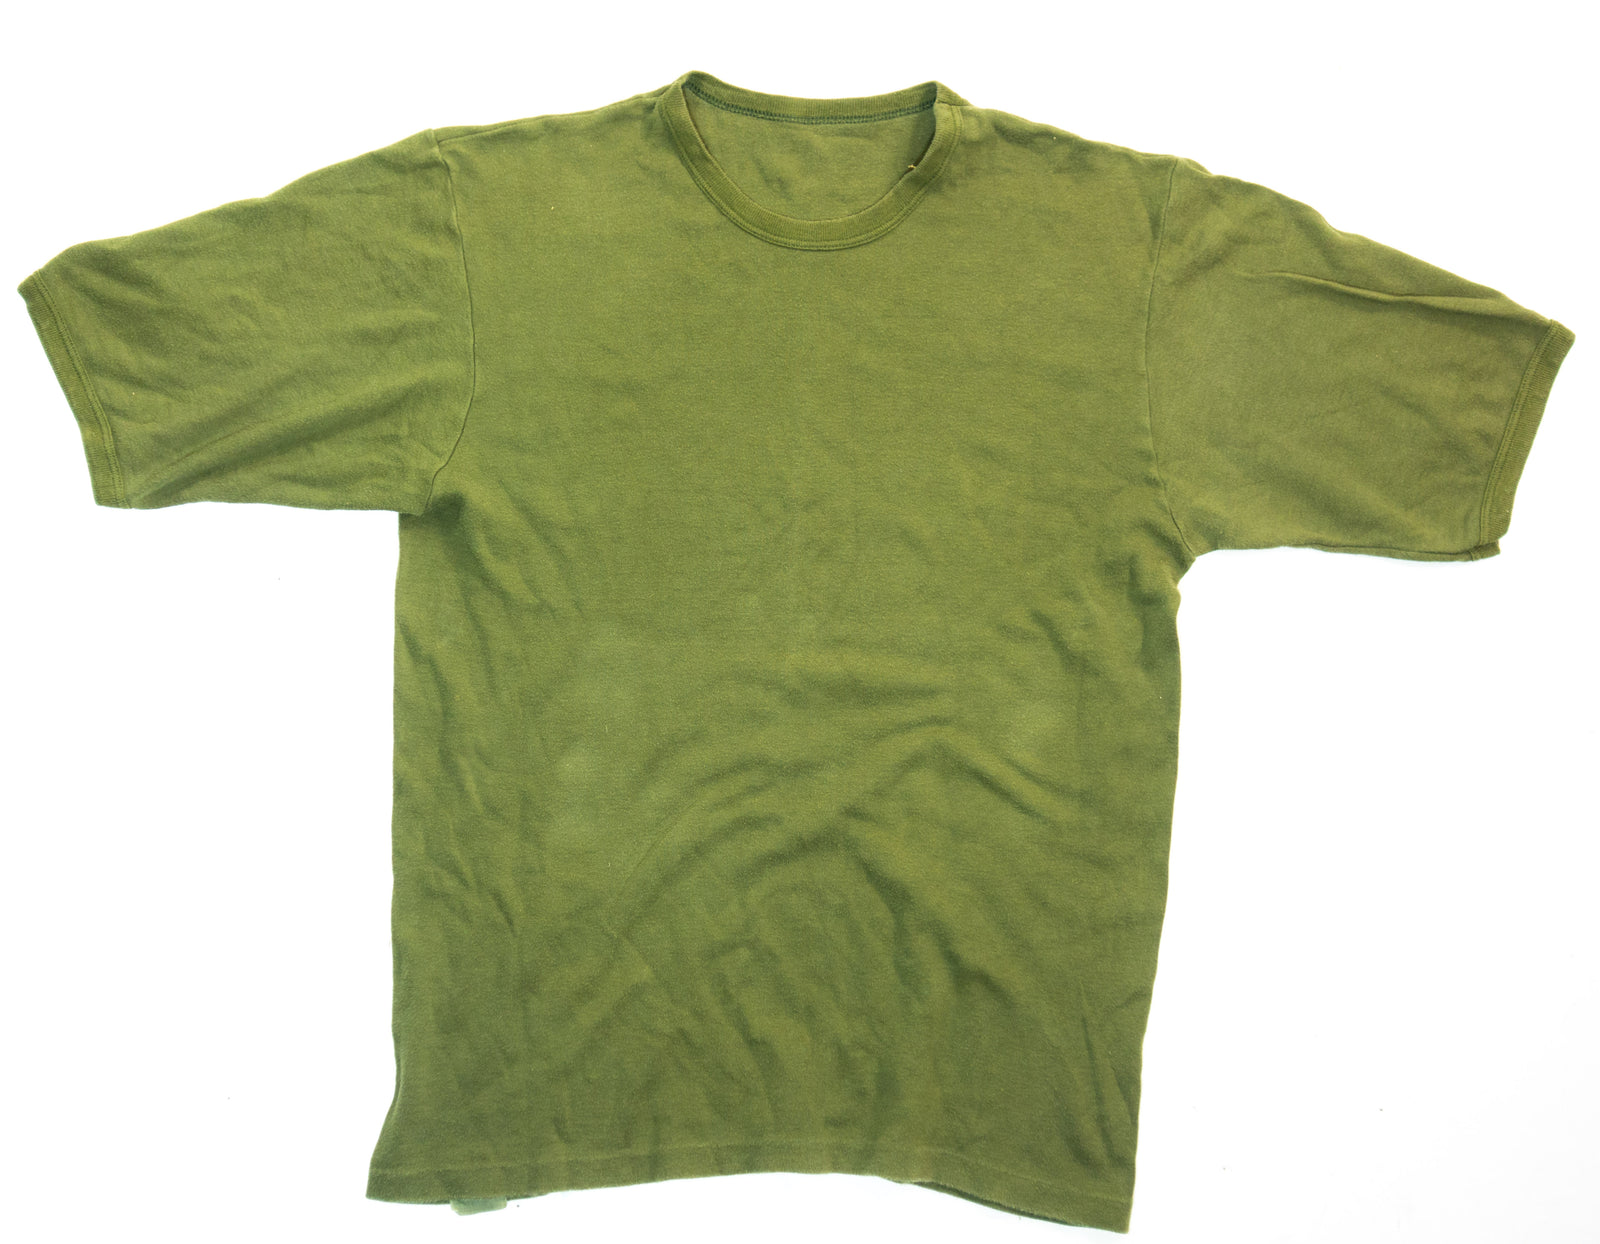 British Army Surplus Olive Green T-Shirt Tee Shirt Cotton